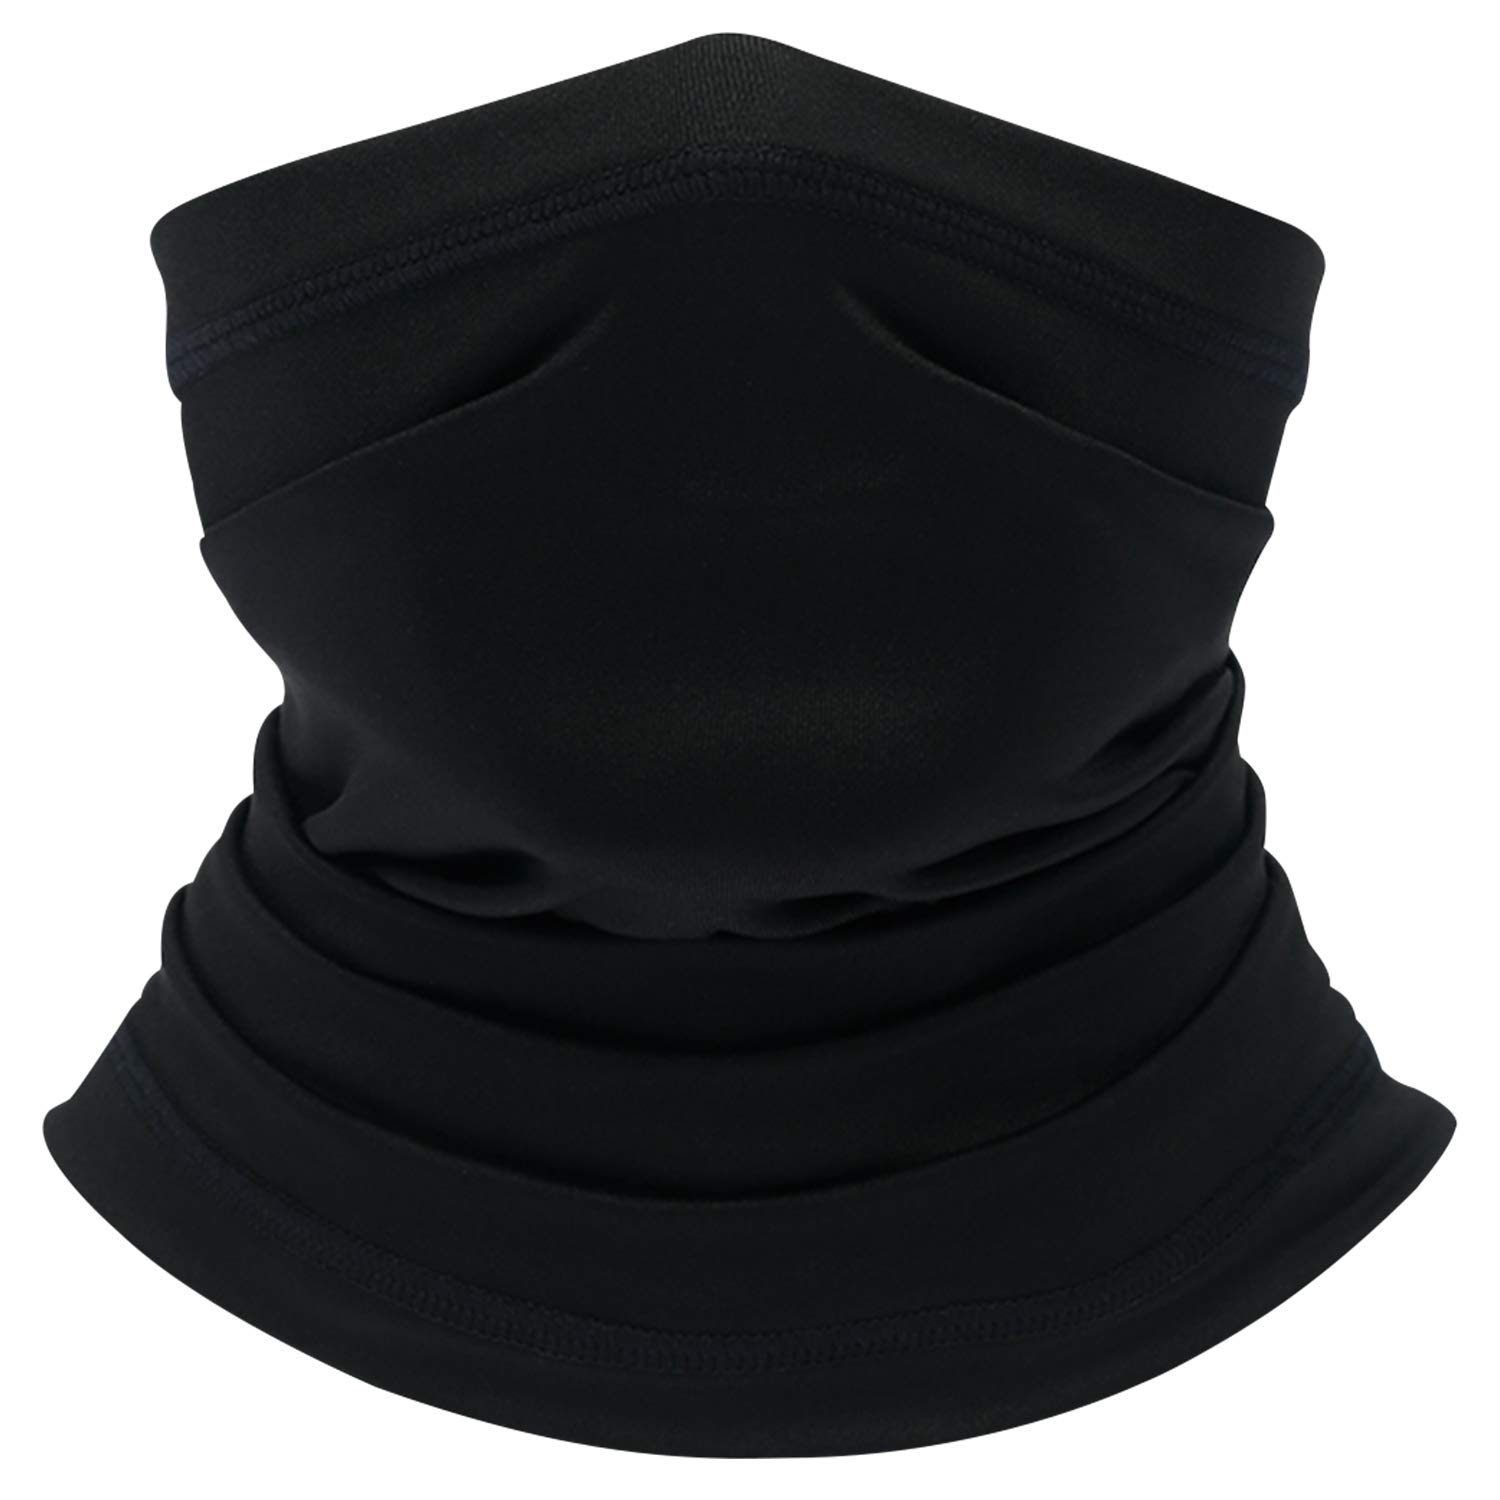 Your Choice Half Face Mask for Dust Sun Protection Motorcycle Fishing Cooling Neck Gaiter for Men and Women Set of 2 Black